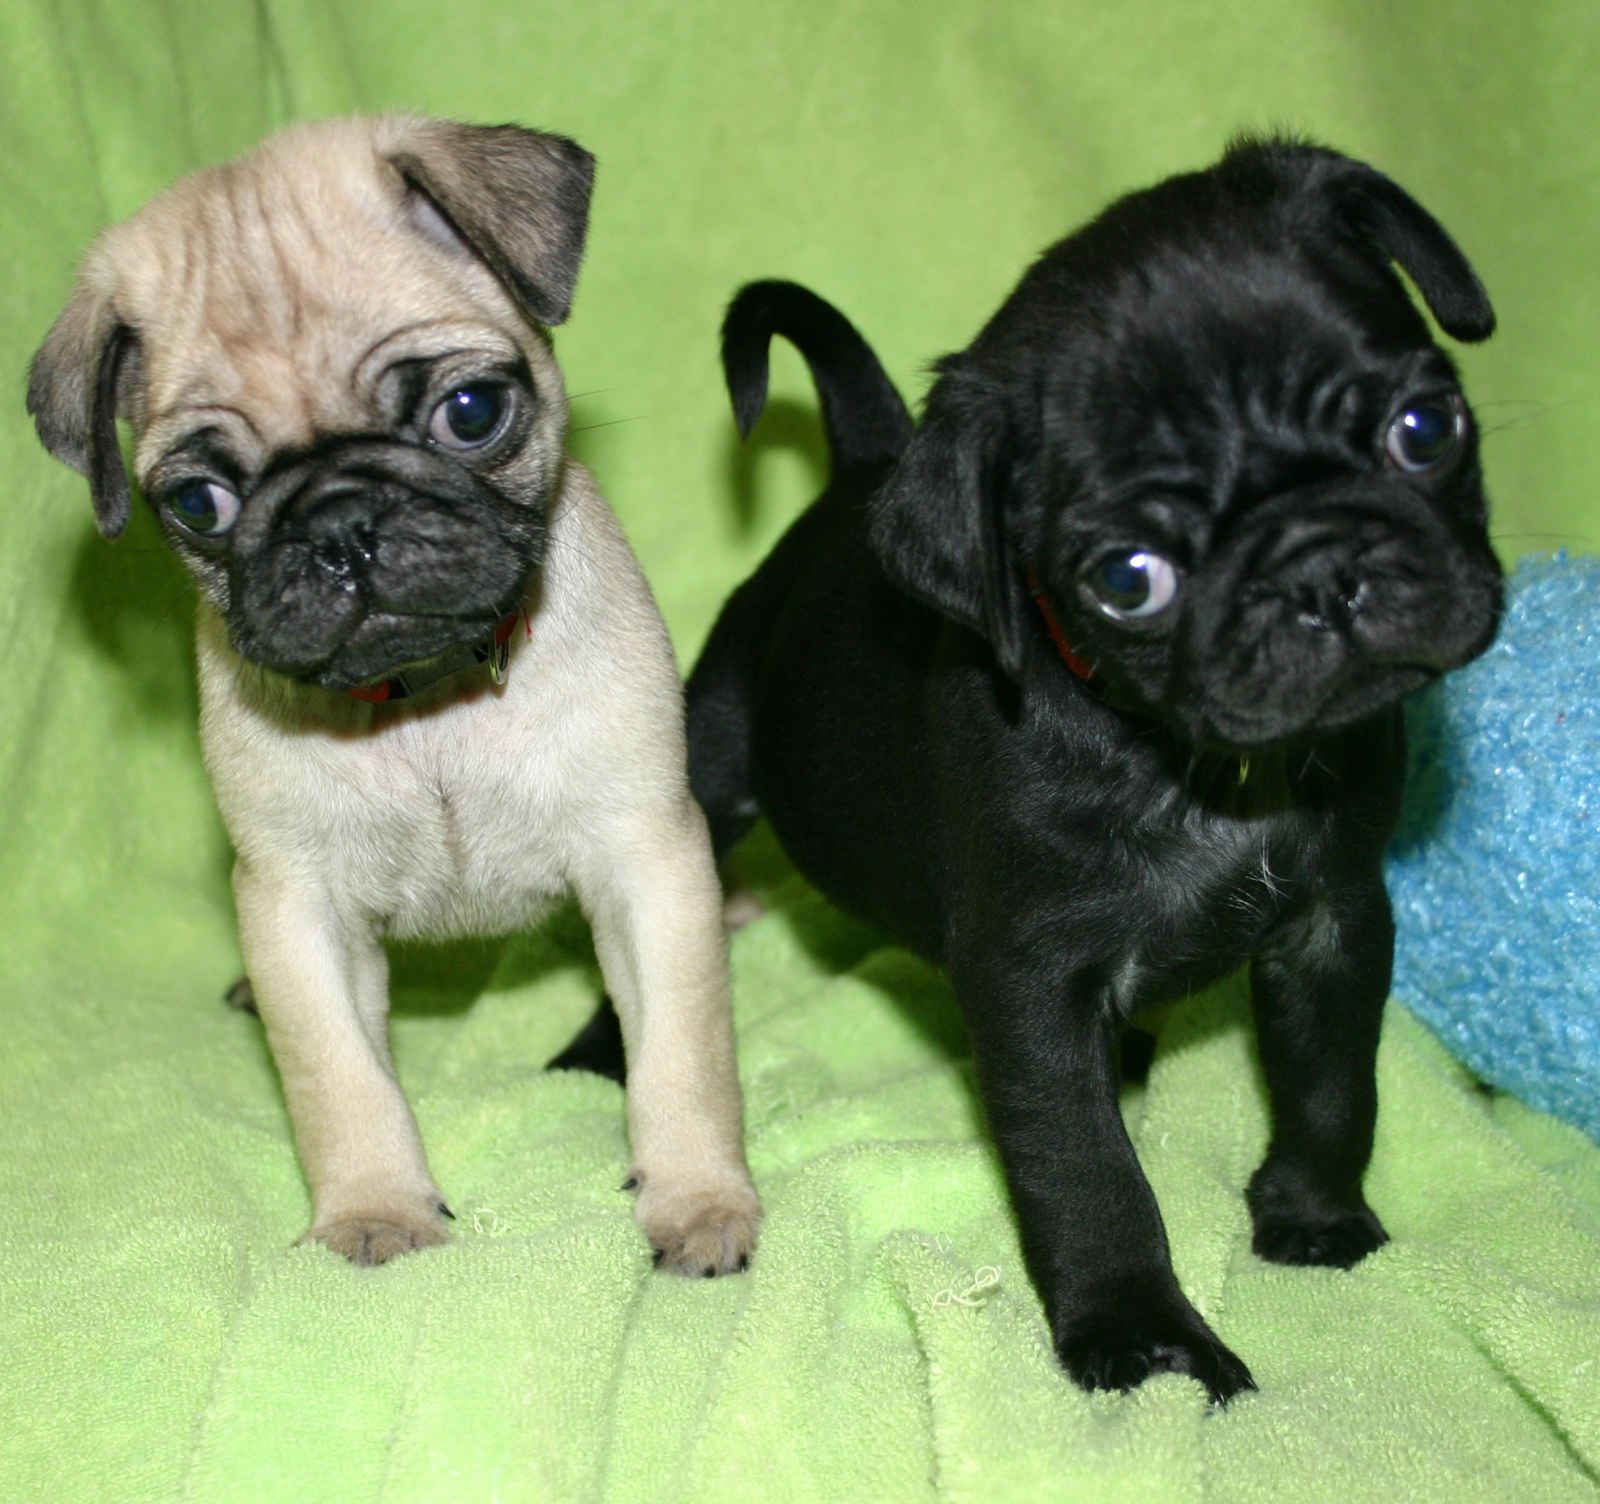 Cute Puppy Dogs Cute Pug Puppies